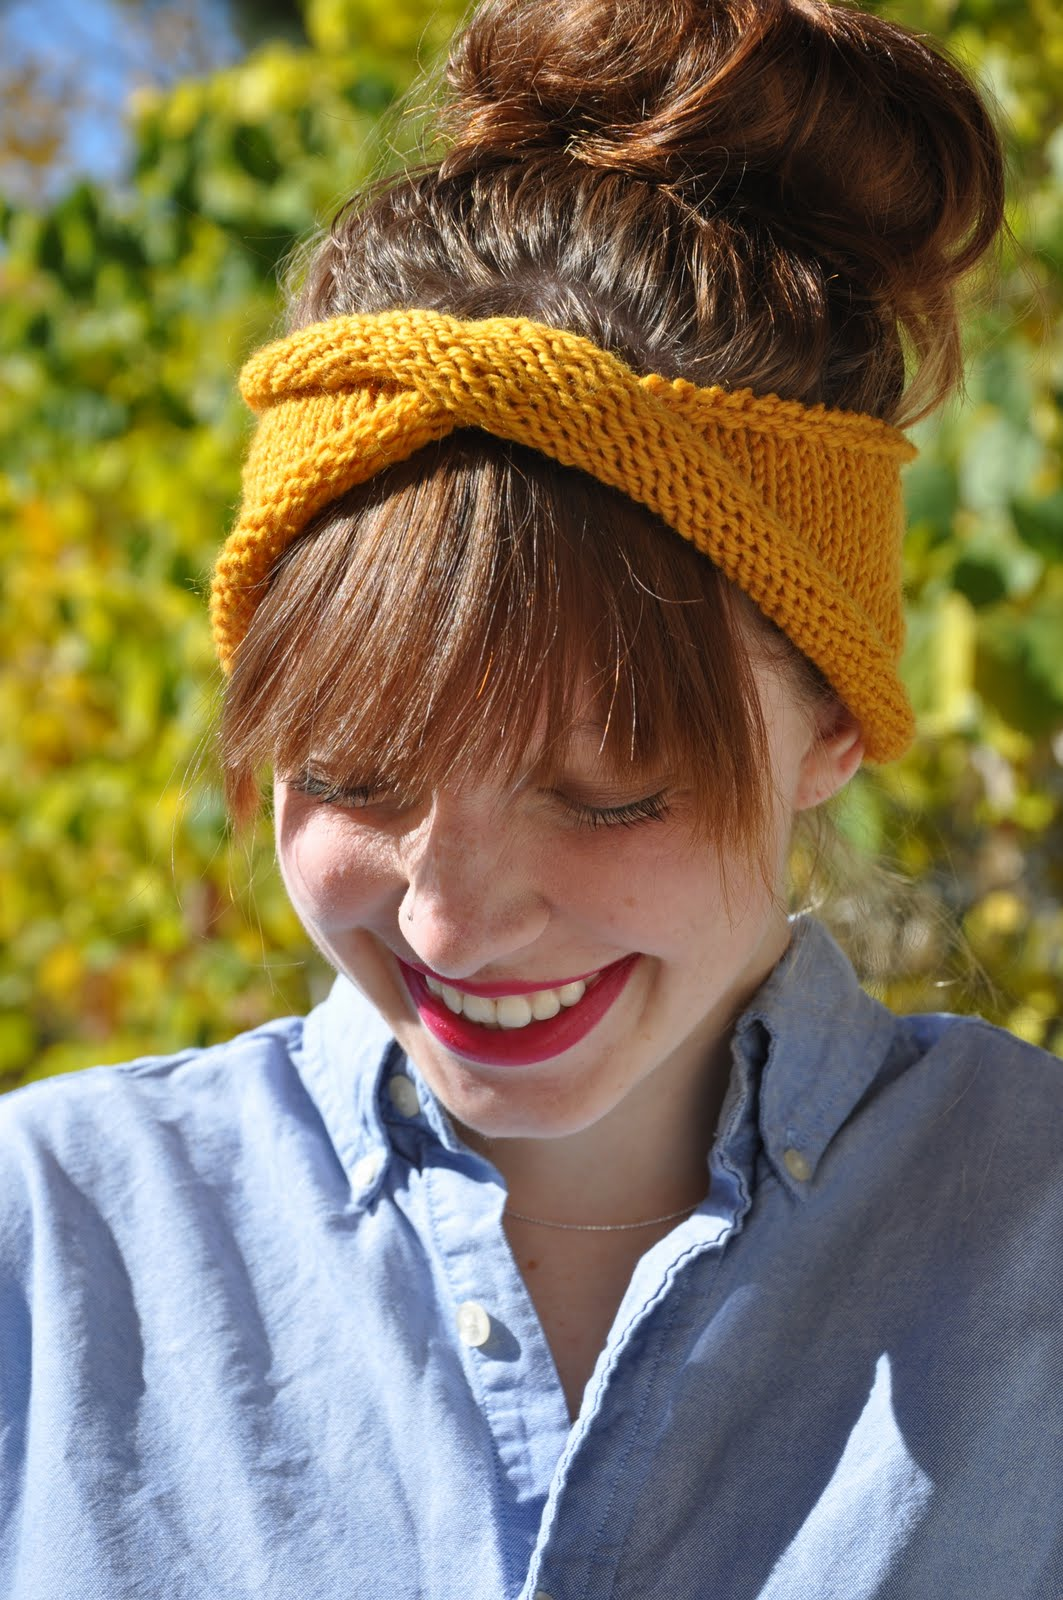 Simple Knit Headband Pattern : Sans Limites Crochet: The Twisty Rolly Headband